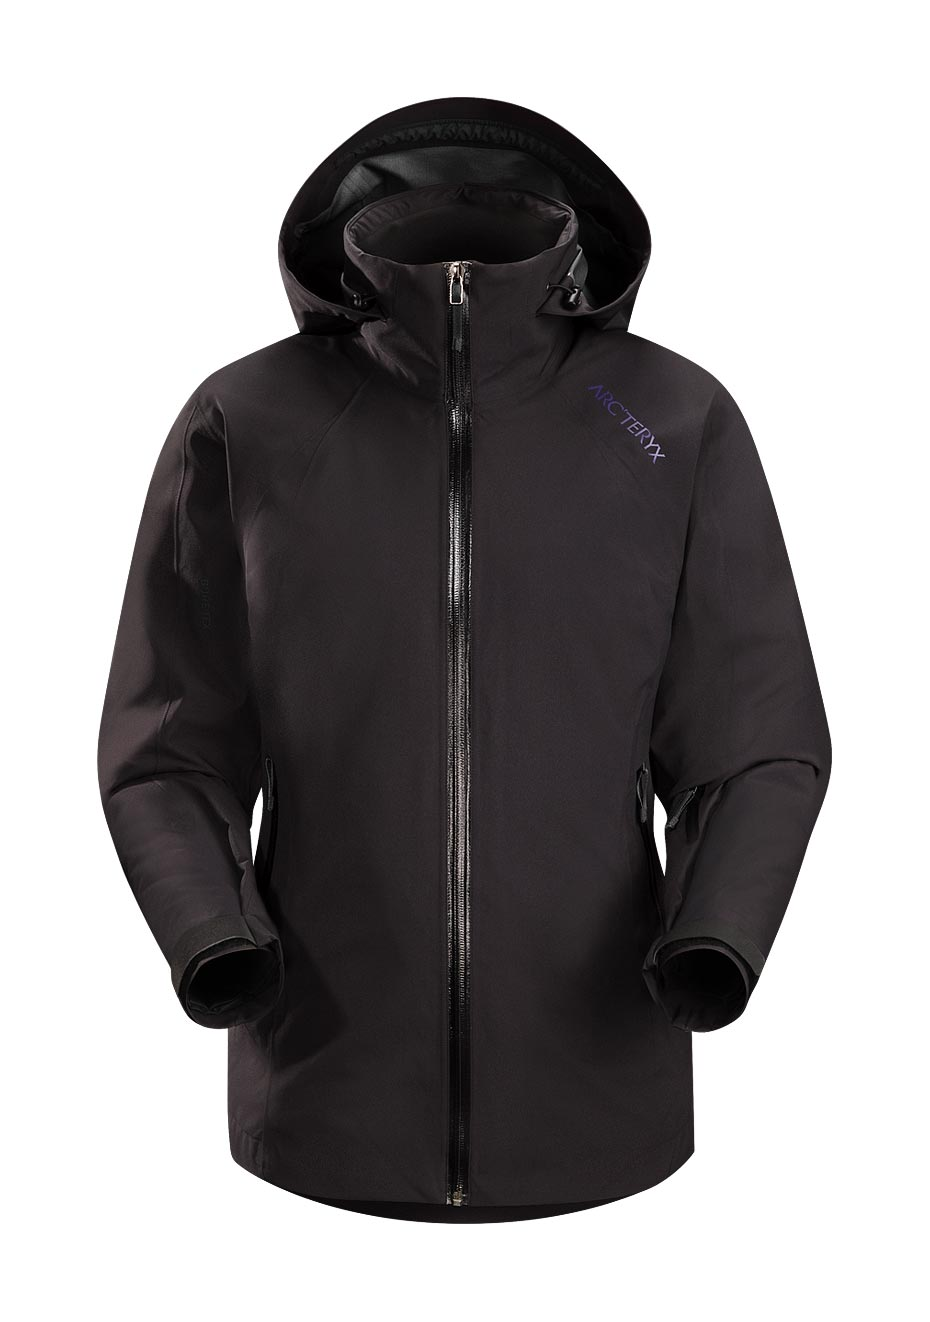 Arcteryx Jackets Women Black Moray Jacket